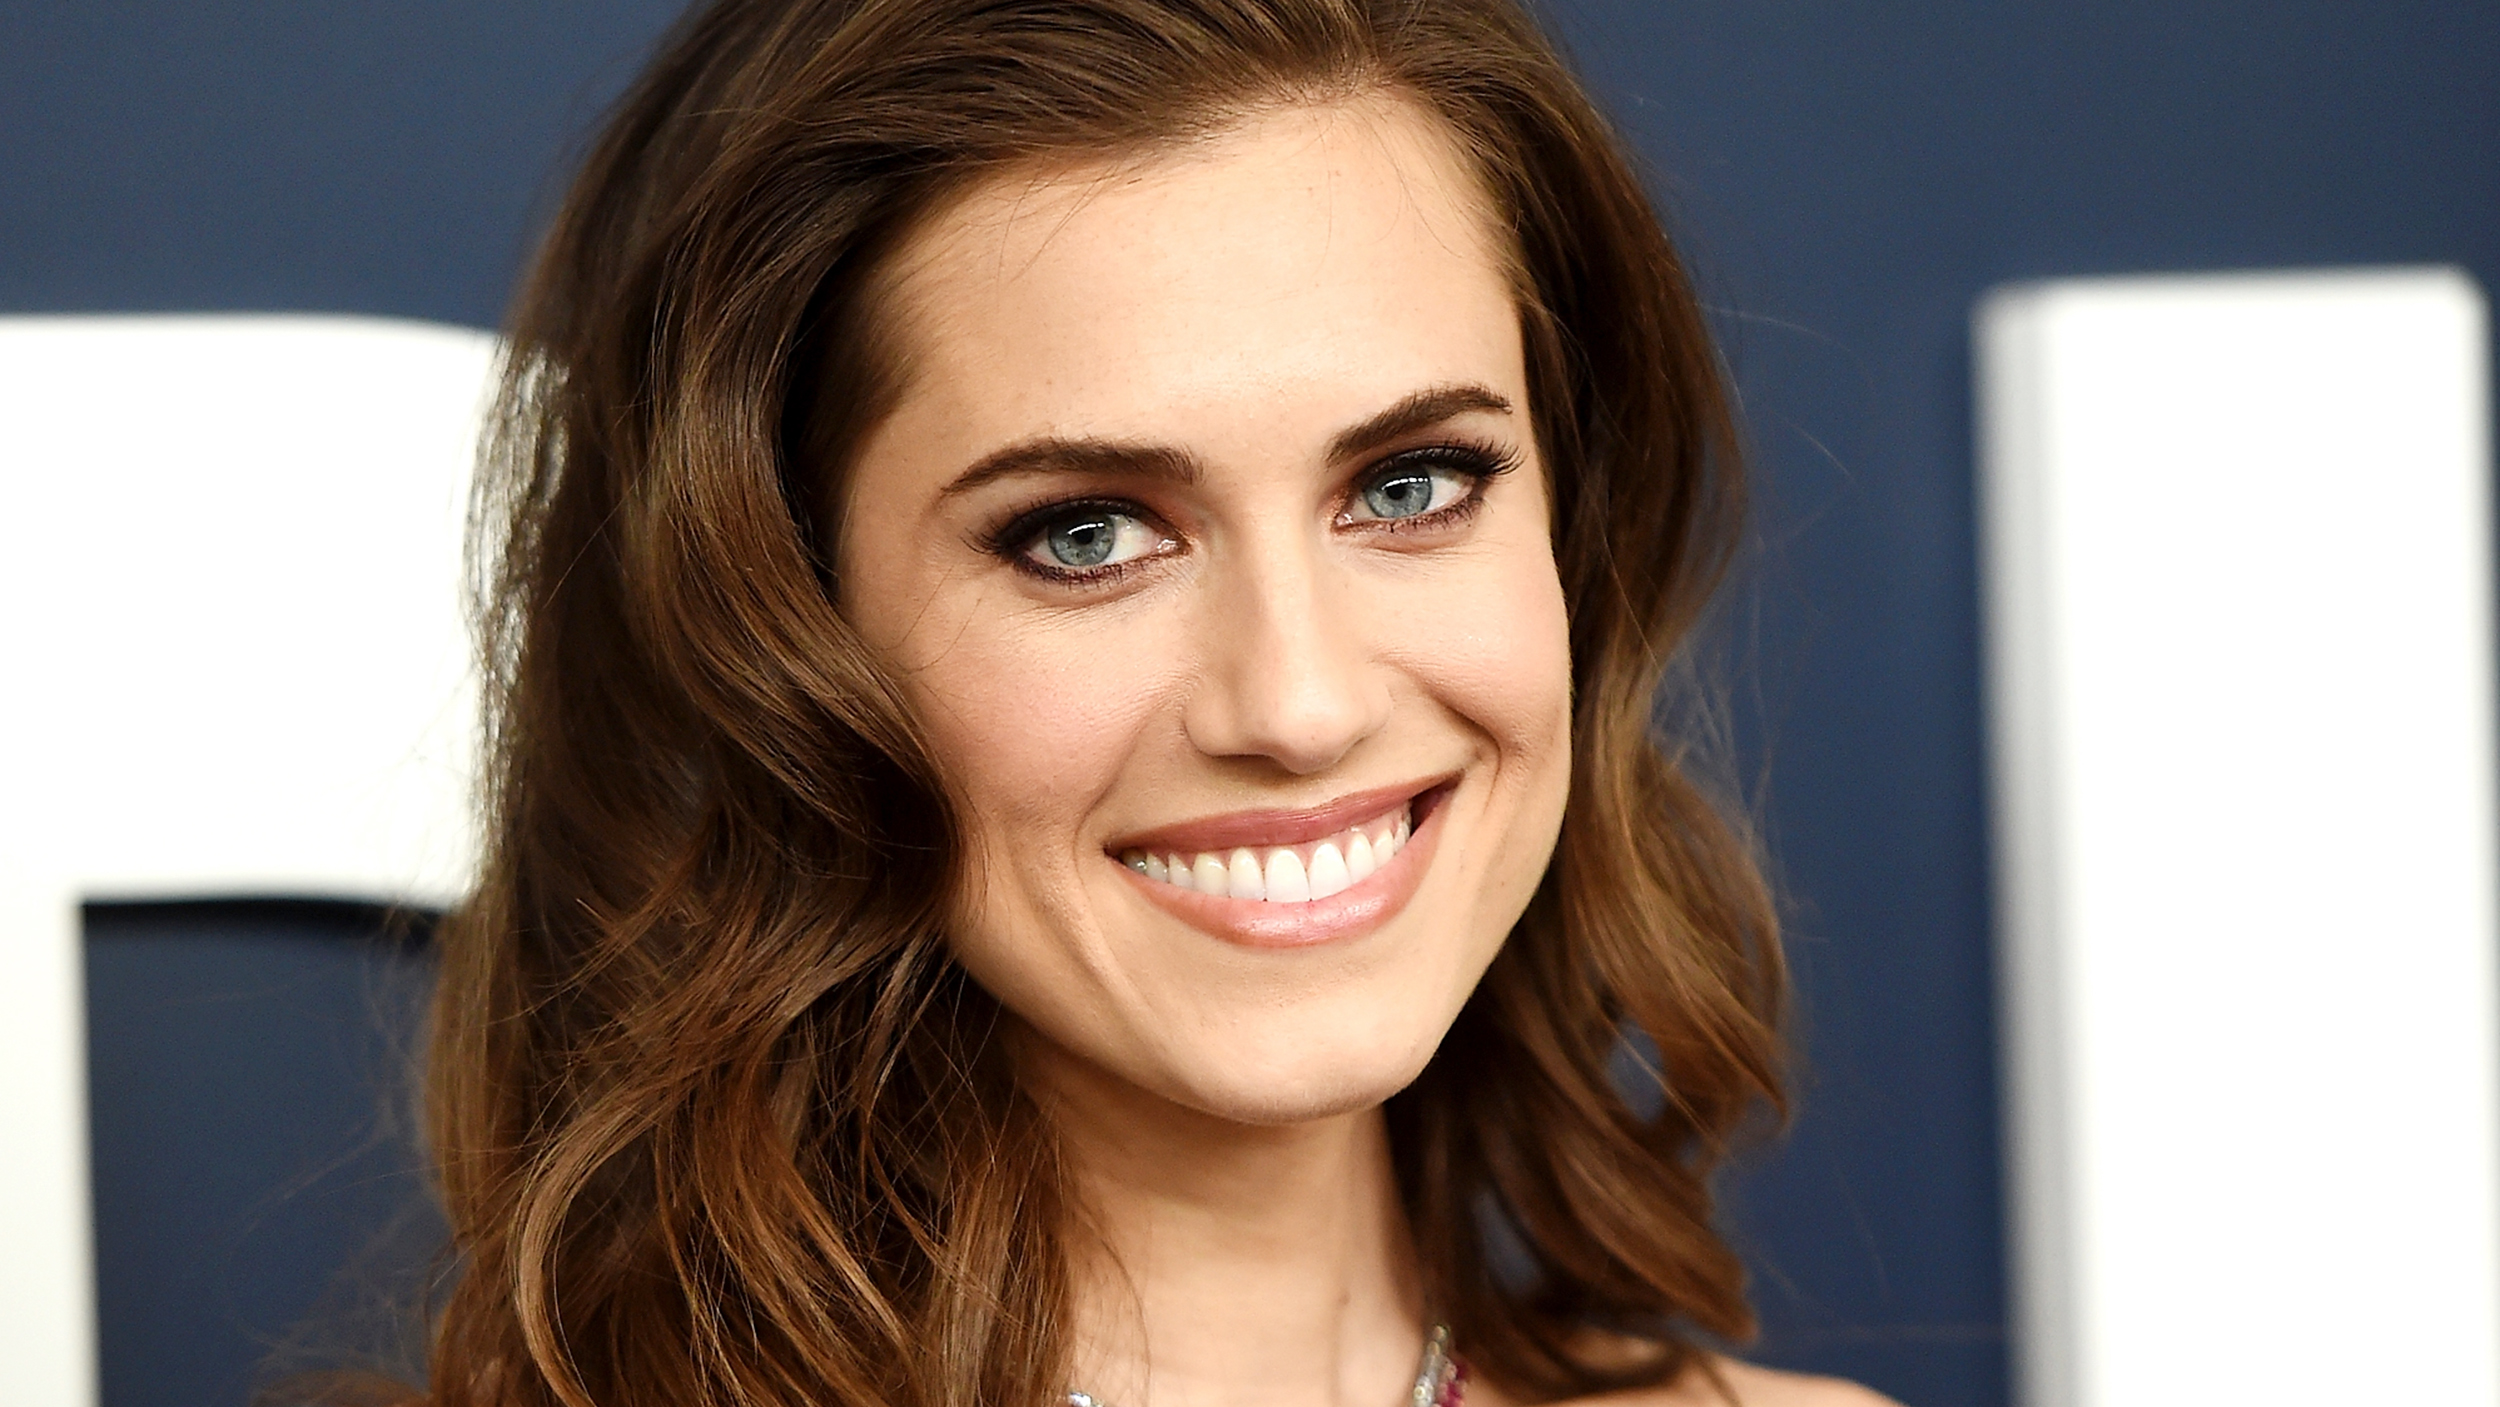 Allison Williams Is Almost Unrecognizable As A Blonde